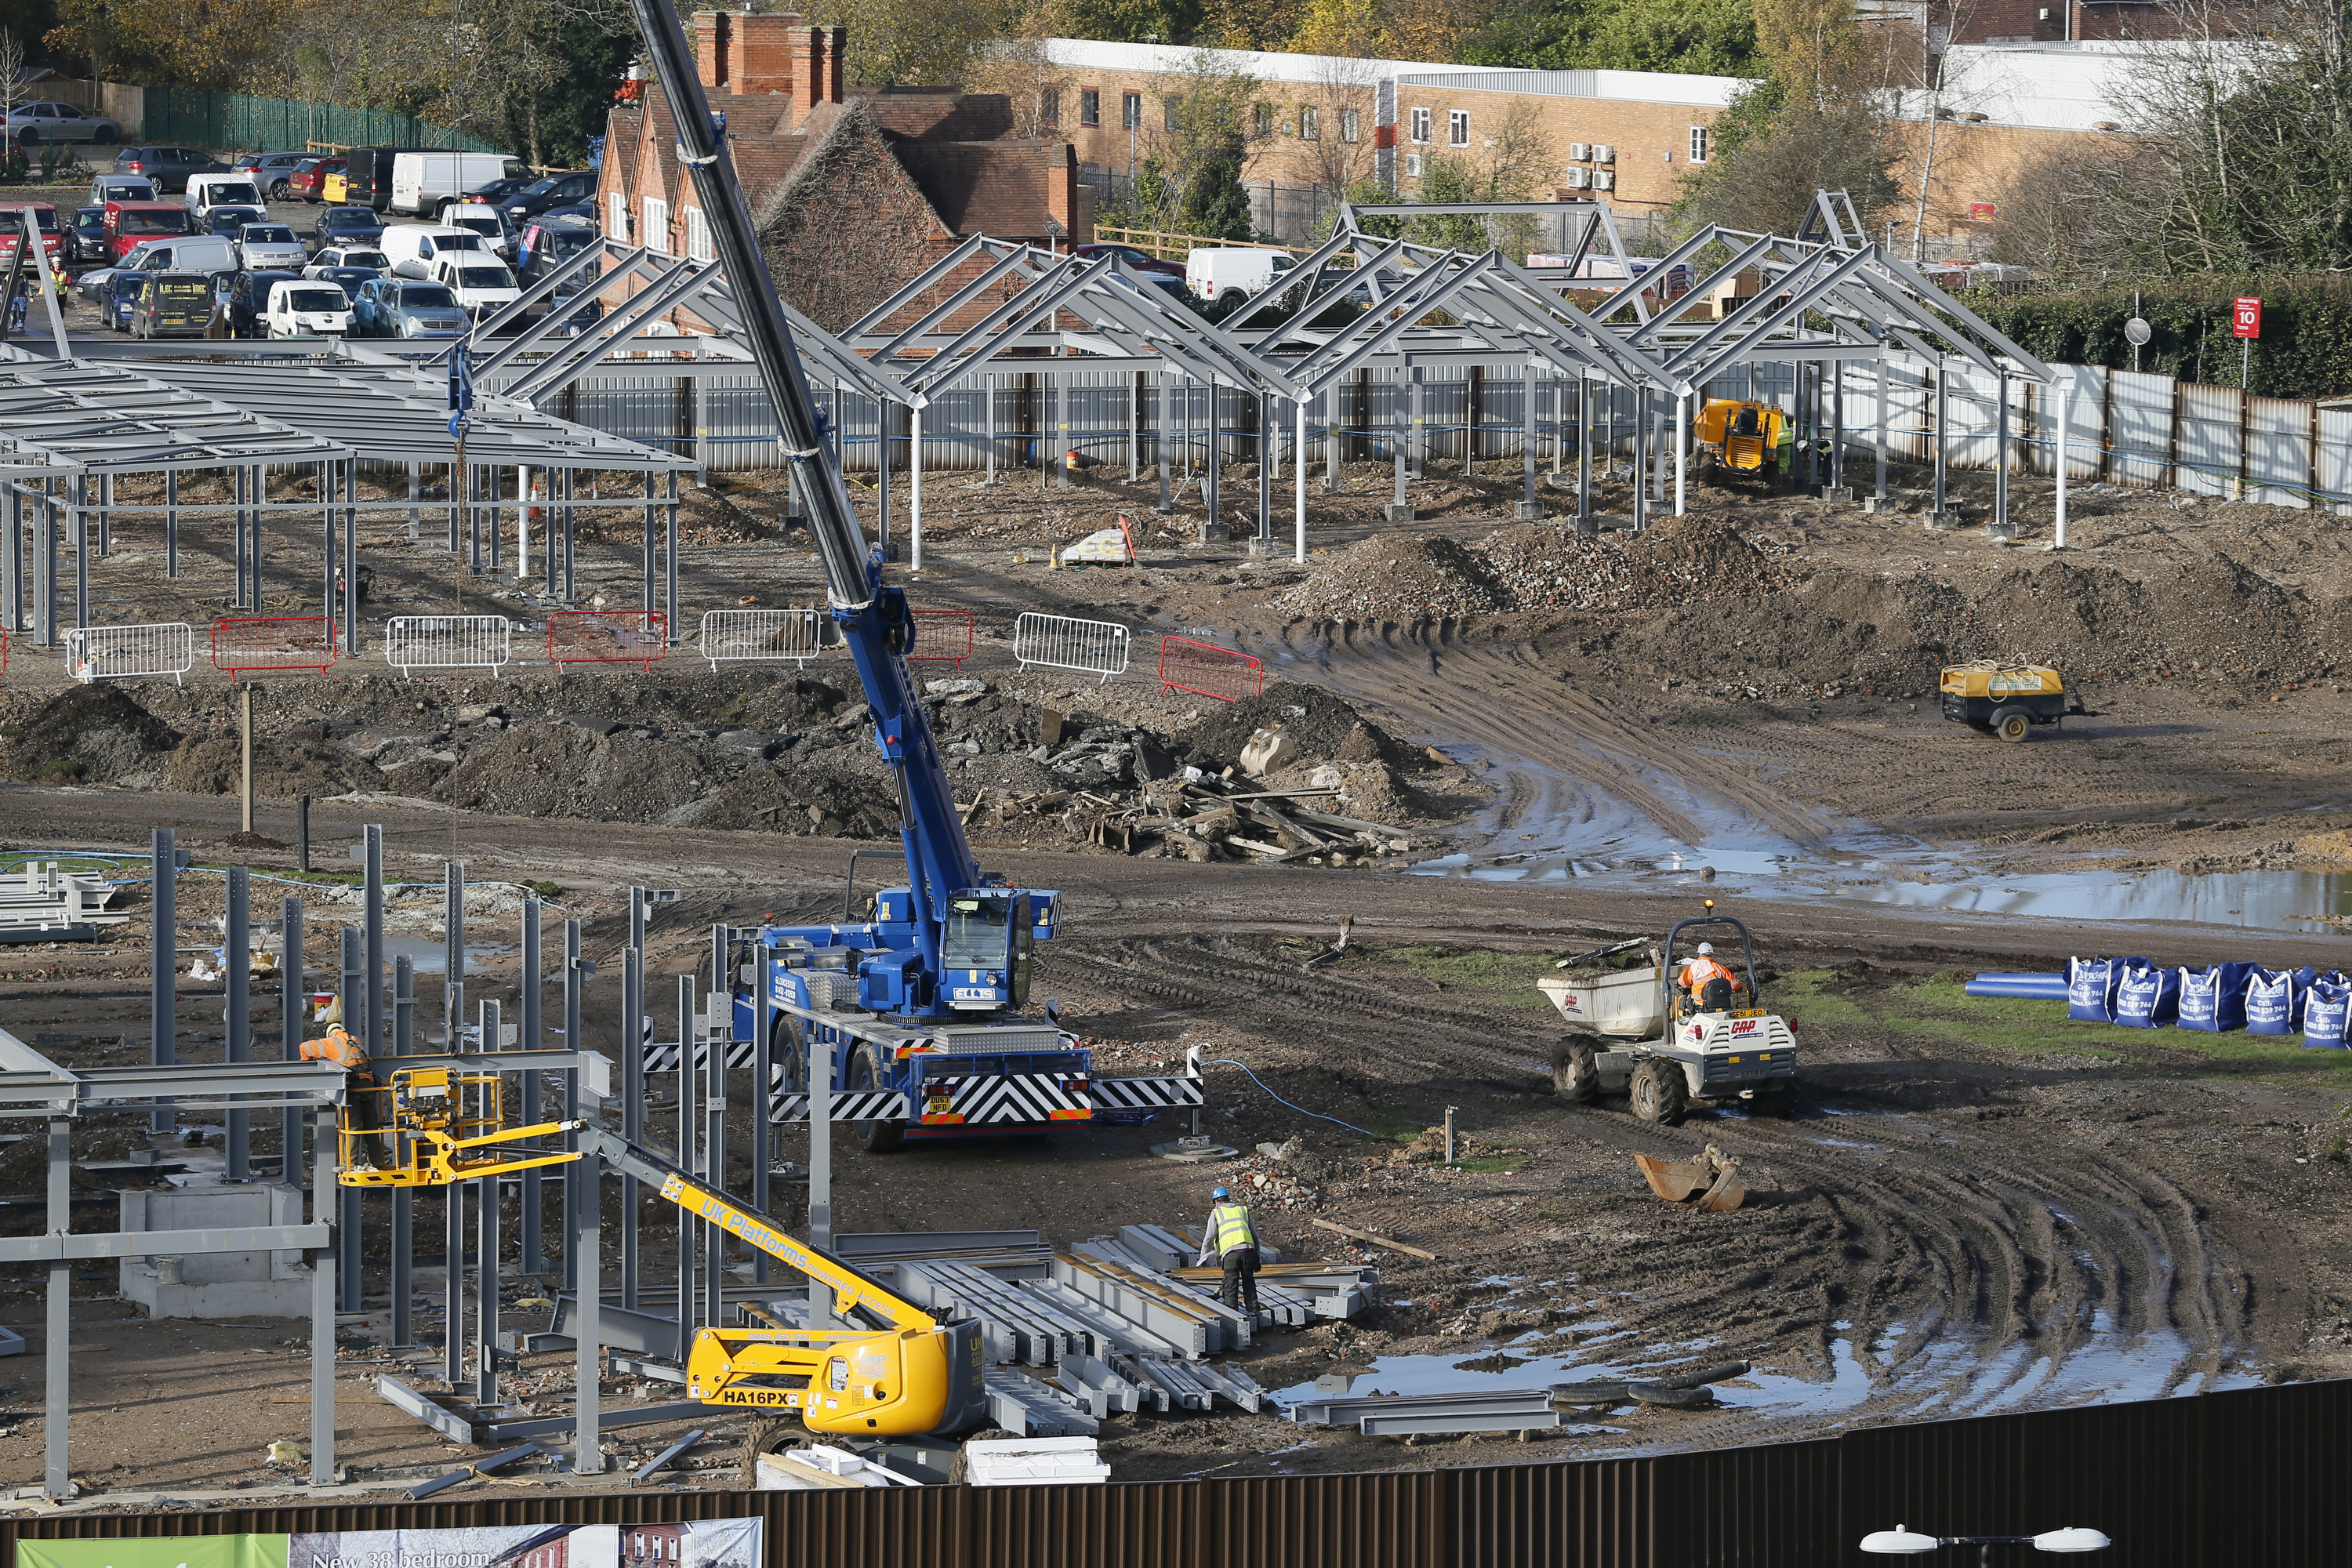 Building Works, Newbury Racecourse, 18-11-14.